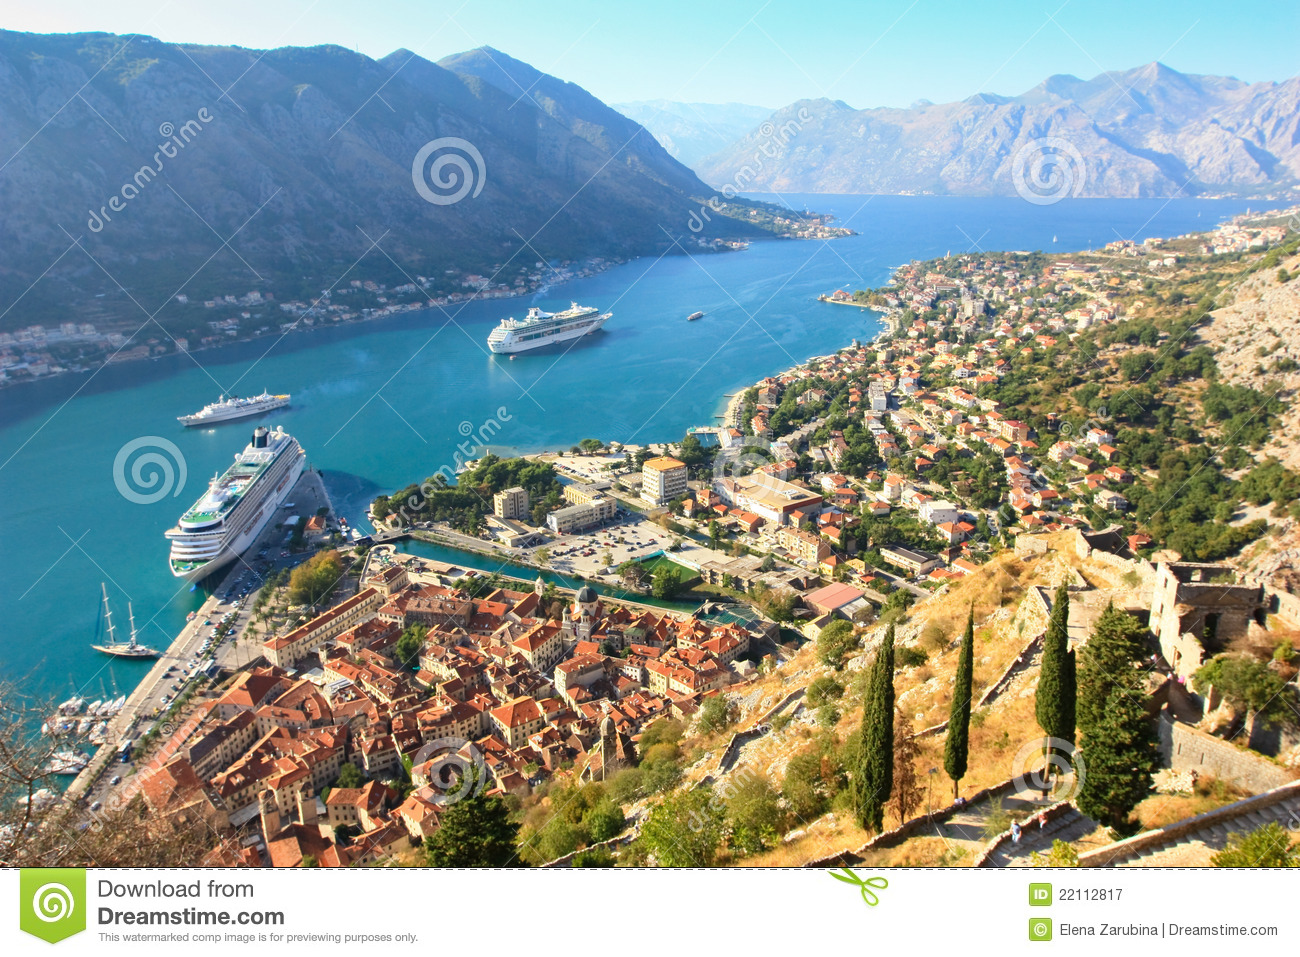 ... , the bay of Kotor with a big cruise ship at anchor in the waters